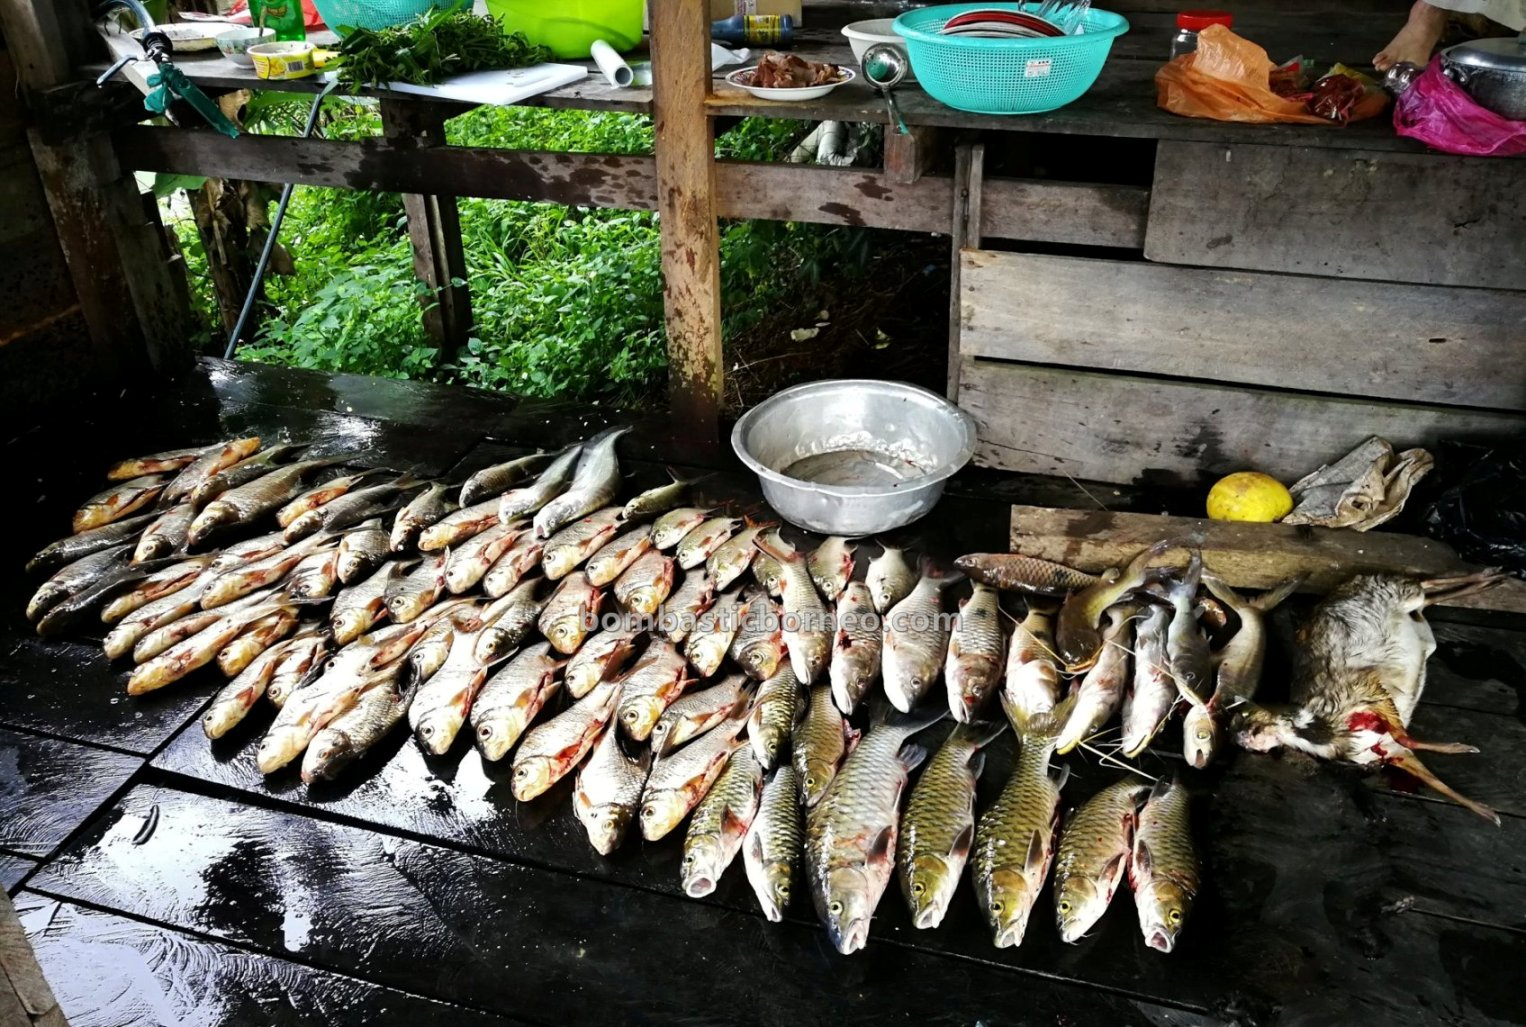 empangan, destination, Ikan semah, traditional, fishing trip, memancing ikan, homestay, Kapit, Malaysia, native, Tourism, tourist attraction, 探索婆罗洲游踪, 砂拉越峇贡水坝, 马来西亚钓鱼之旅,